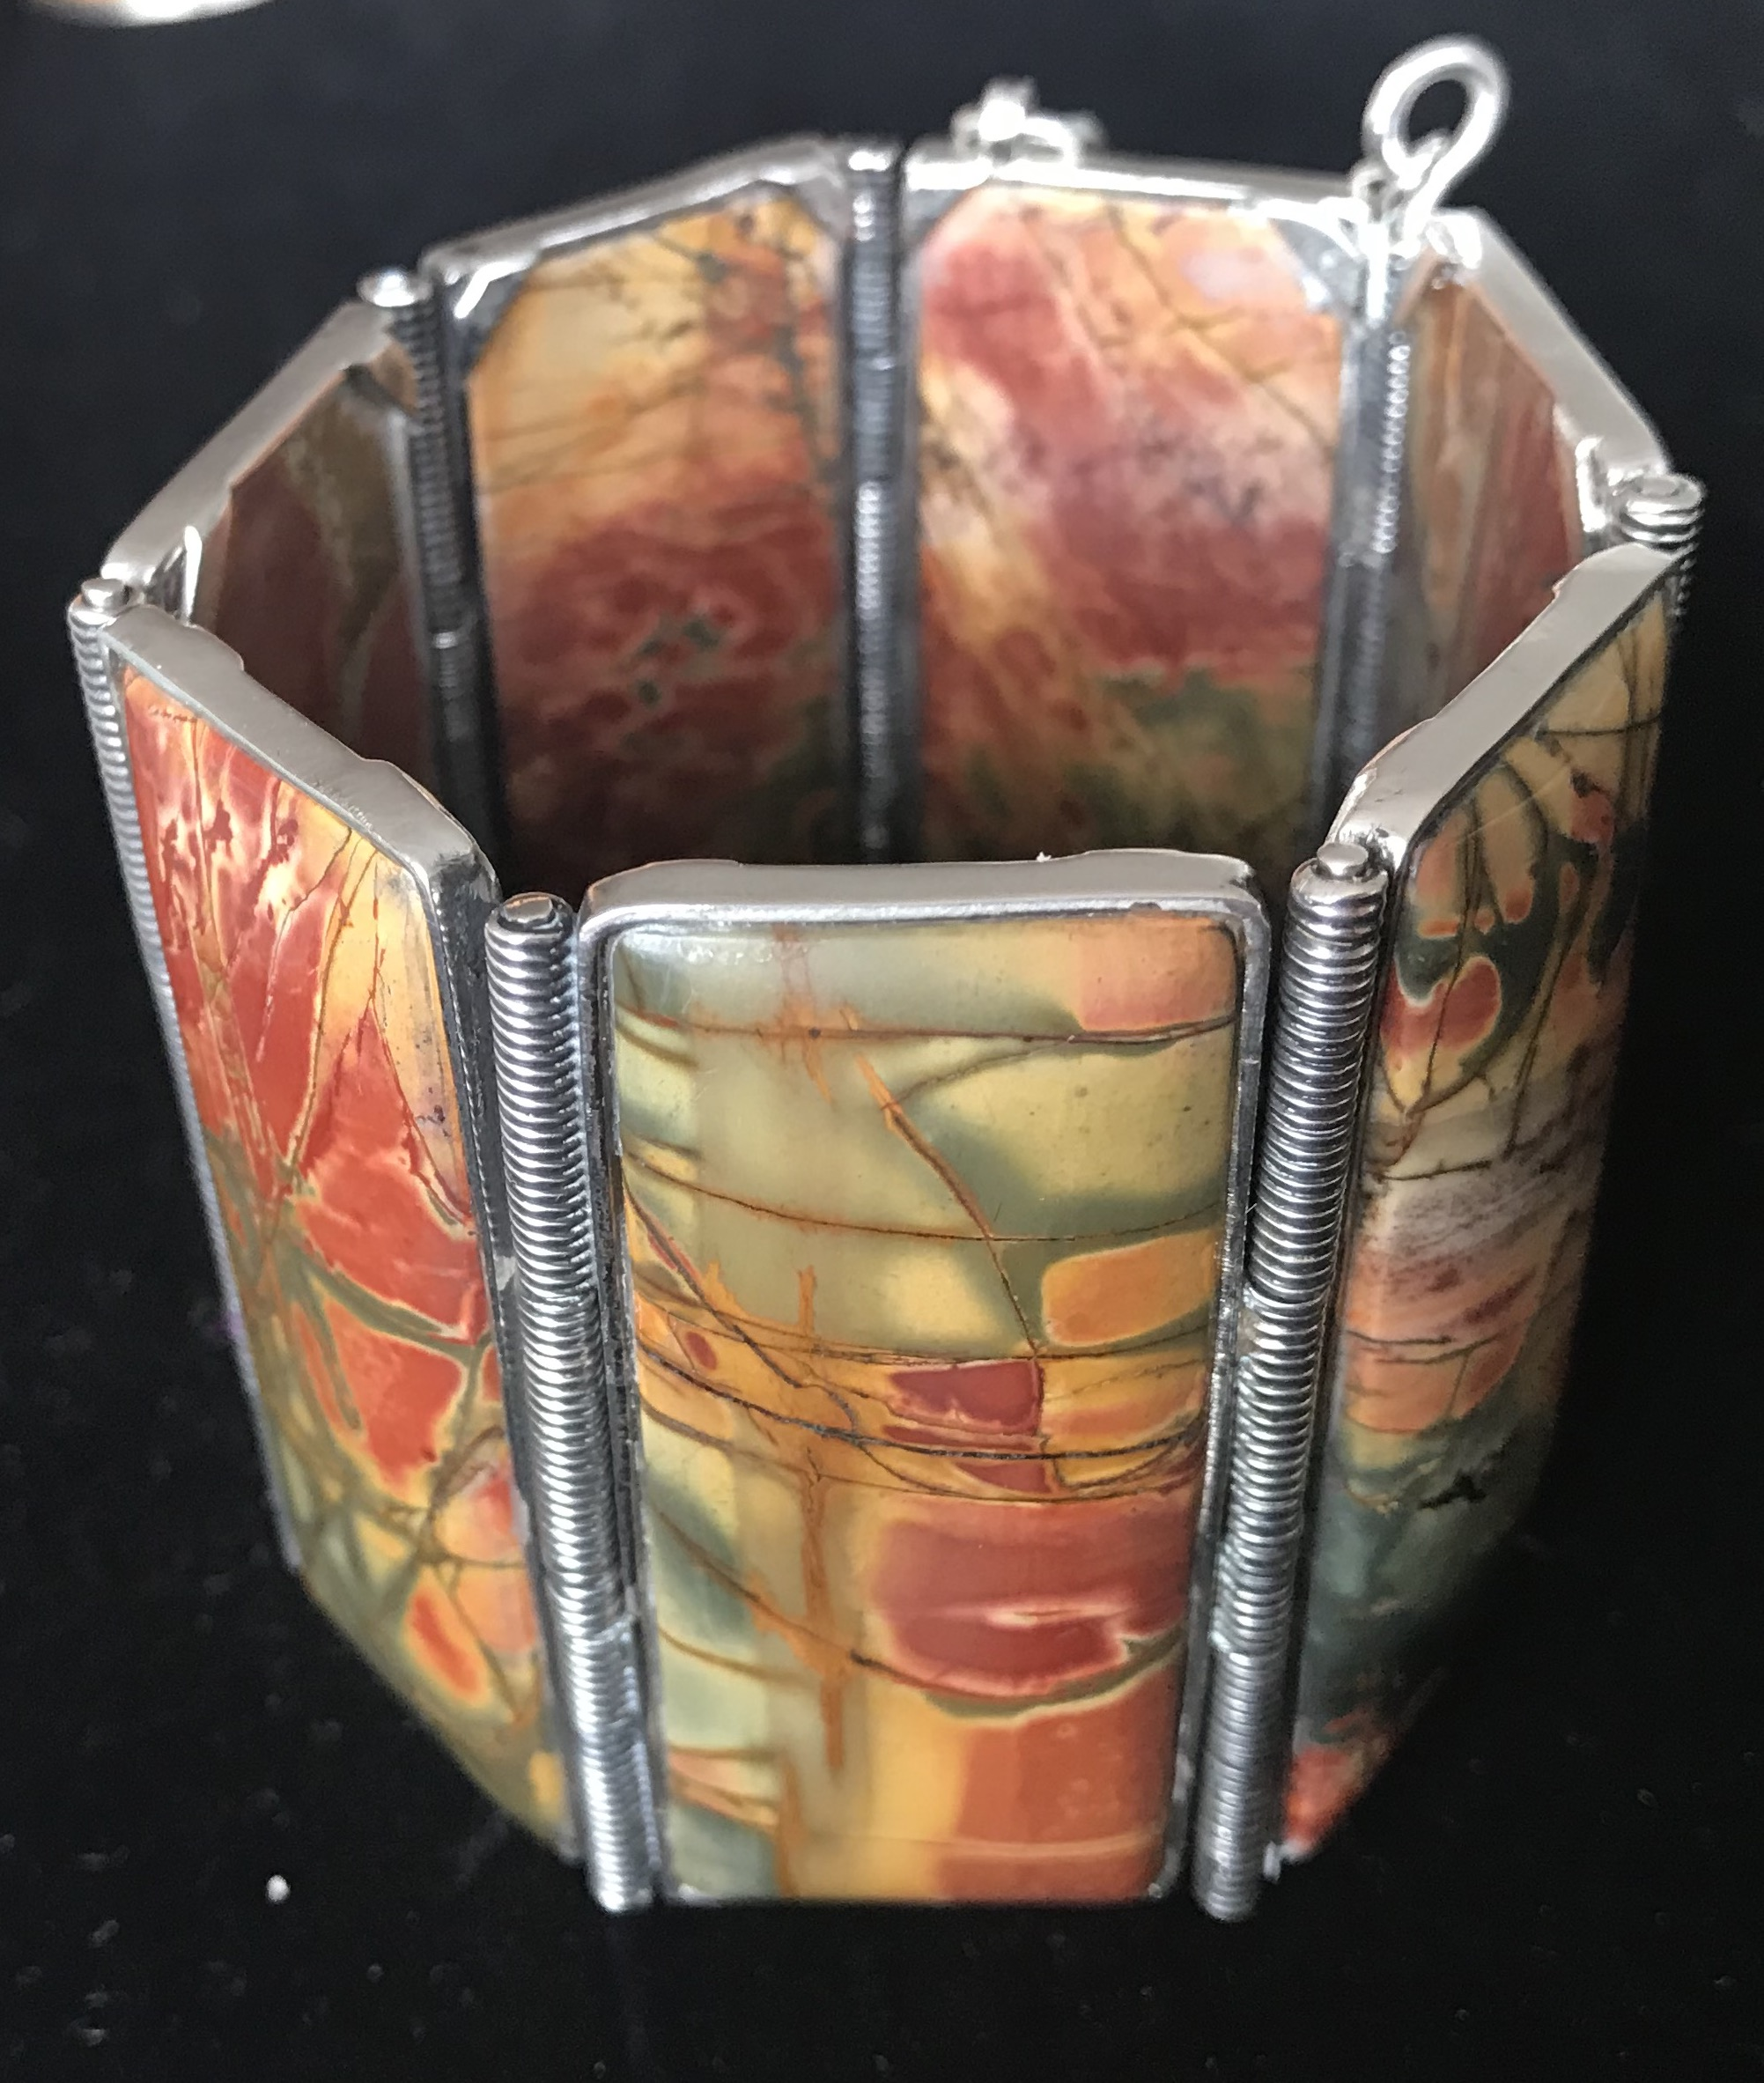 """Lois Sherr Dubin """"QueenBead"""" - Large beads of borosilicate (hard) glass are lamp-worked, blown, surface decorated and heat and gravity shaped. Small spacer beads of borosilicate and soda-line (soft) glass are lamp worked and surface decorated. No two beads are identical, all are handmade and one-of-a-kind. Both the necklaces and the single beads on an adjustable leather cord can be worn separately or layered in varied combinations.The necklaces have been designed and assembled by Lois Sherr Dubin (QueenBead) of New York. A museum curator and author, Dubin has curated numerous exhibitions and written many books on adornment. Her lifelong love and research led to her best-selling The History of Beads: From 30,000 B.C. to the Present (Abrams, 1997; reissued in paperback in 2004 and reissued and updated November 2009 as The History of Beads: 100,000 to the Present).This year Dubin introduced the QB line of beautiful jasper necklaces and bracelets. Due to the natural properties of the stone each piece is unique. Stones are cut and assembled into pieces that can be worn alone or layered.To visit the full collection and learn more about this designer, visit www.loissherrdubin.com"""